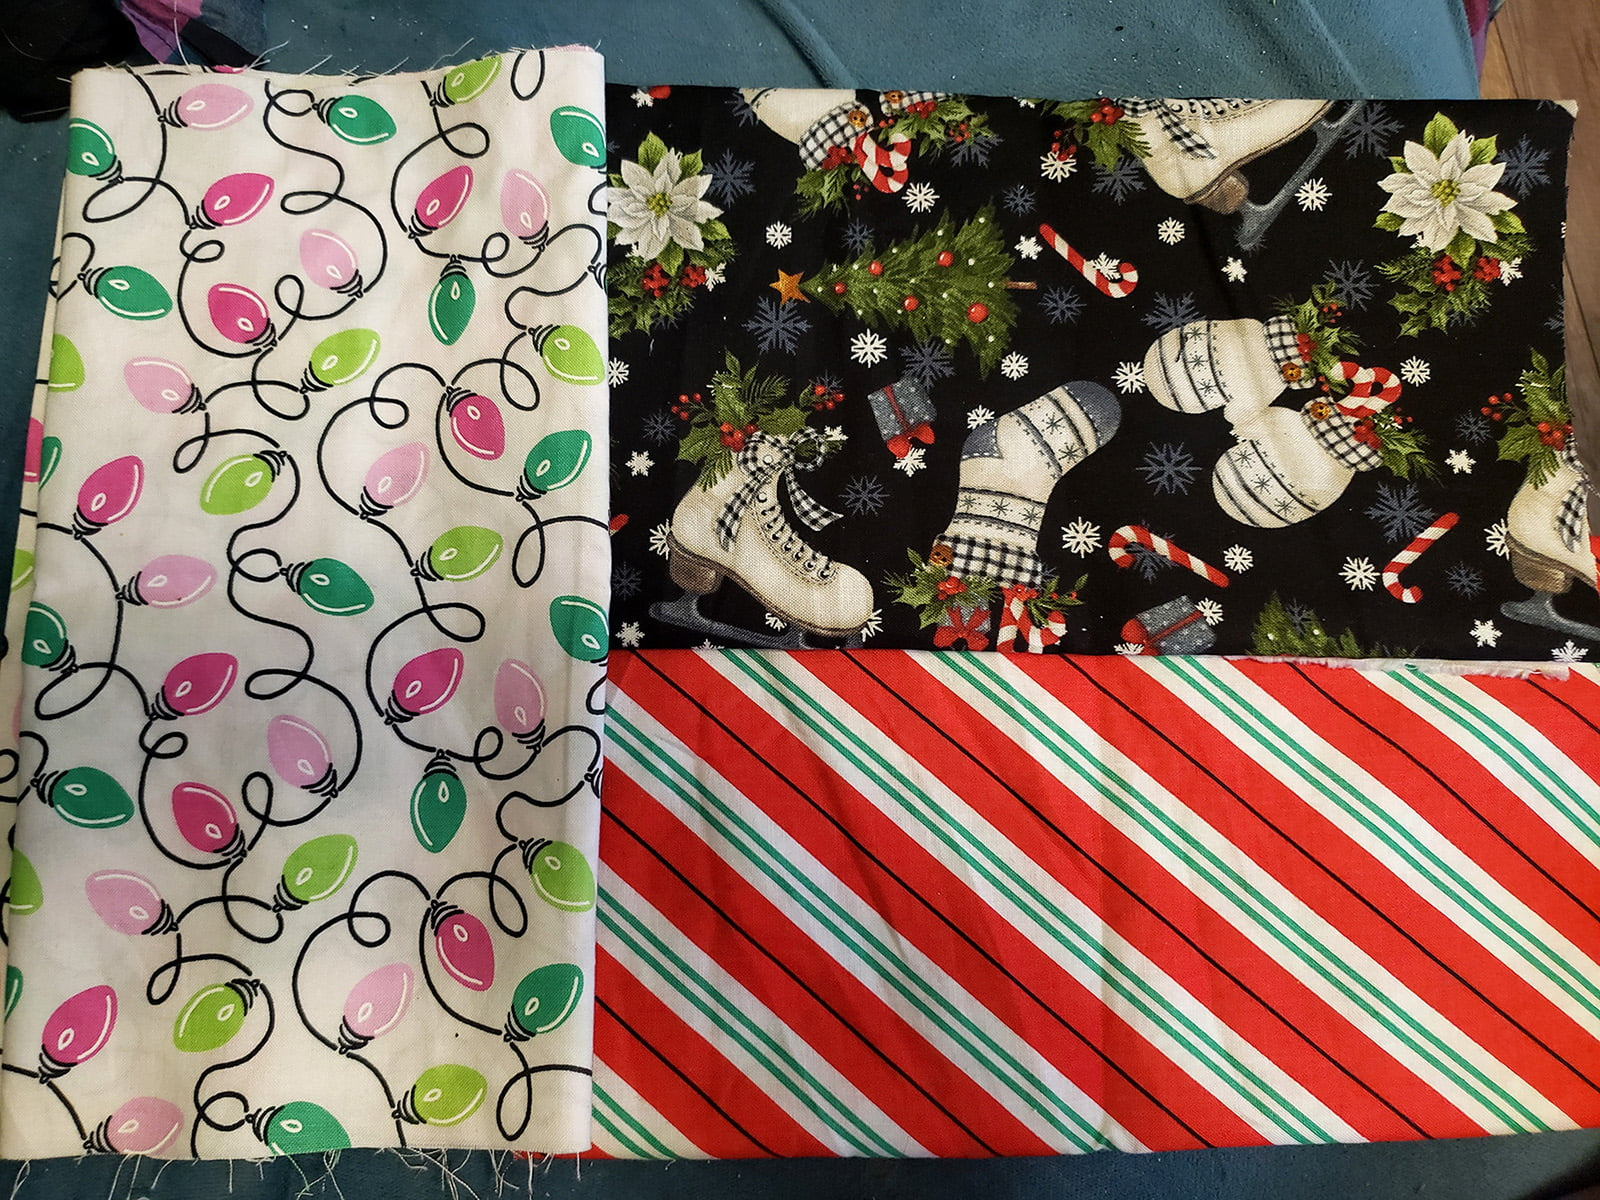 3 pieces of holiday print fabric, laid out on a flat surface.